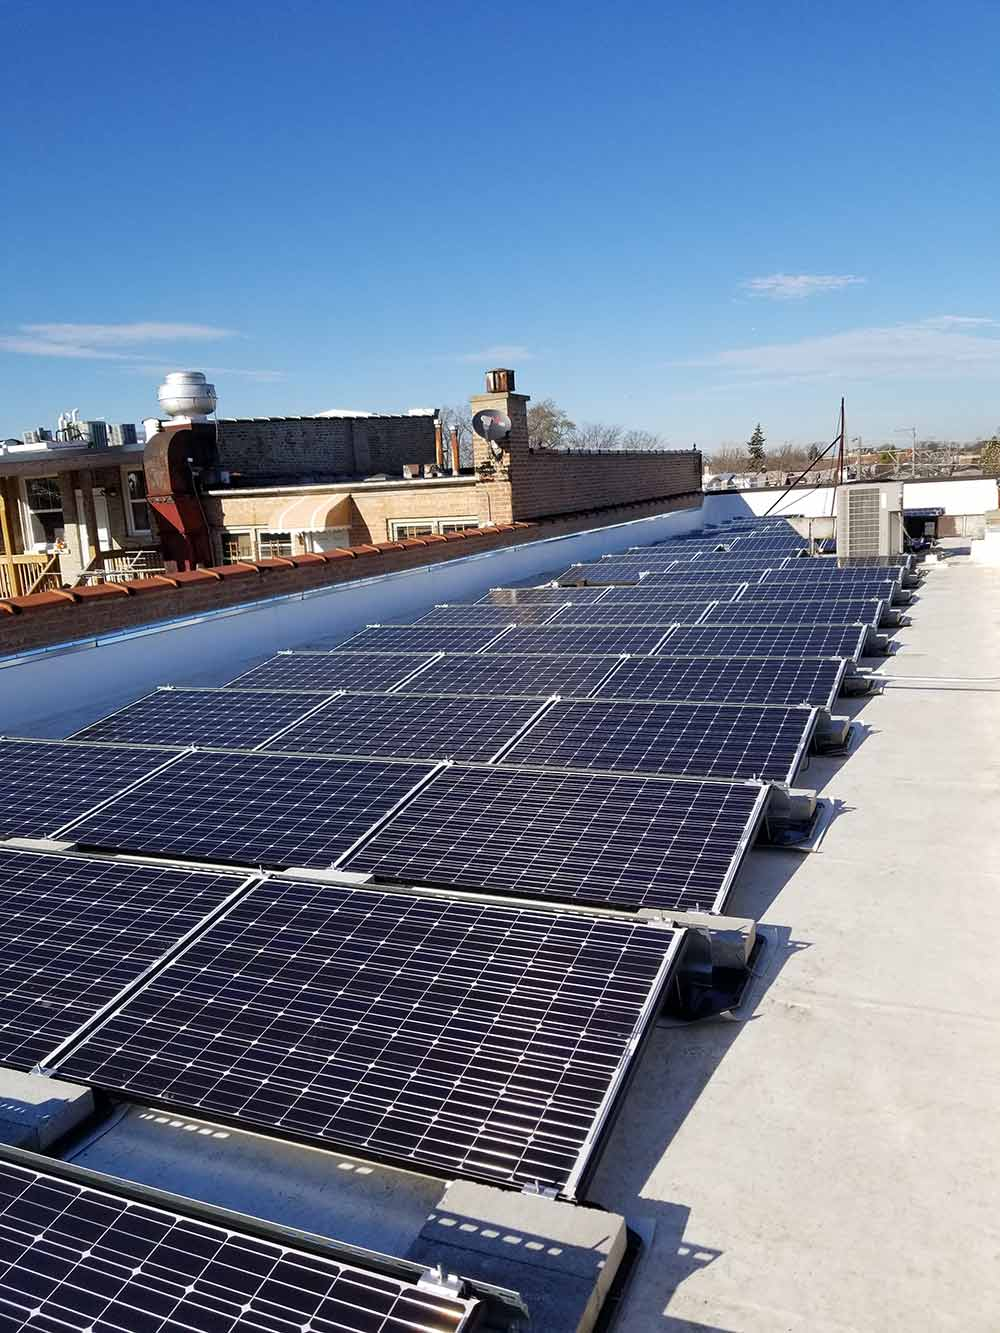 hight resolution of rows of solar panels on a roof